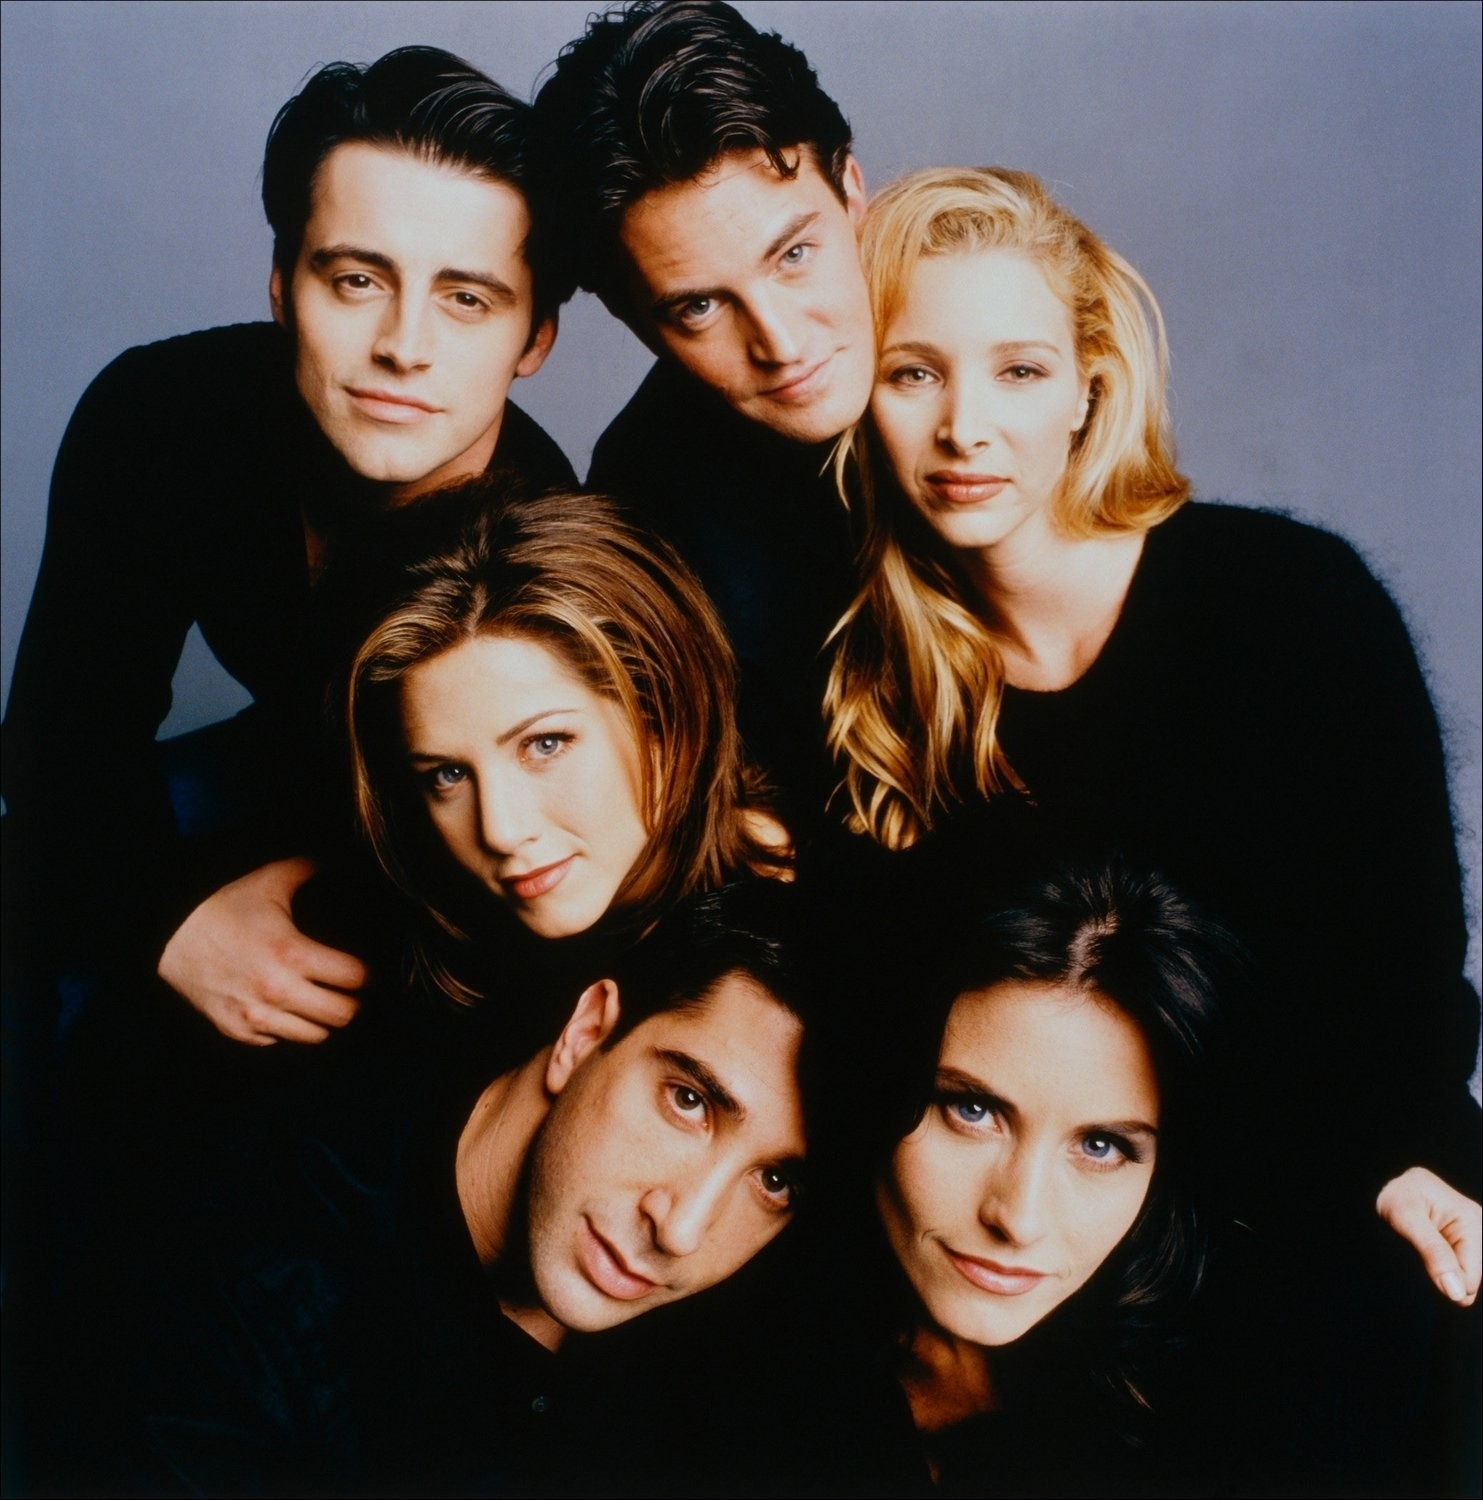 how well do you know the tv show friends